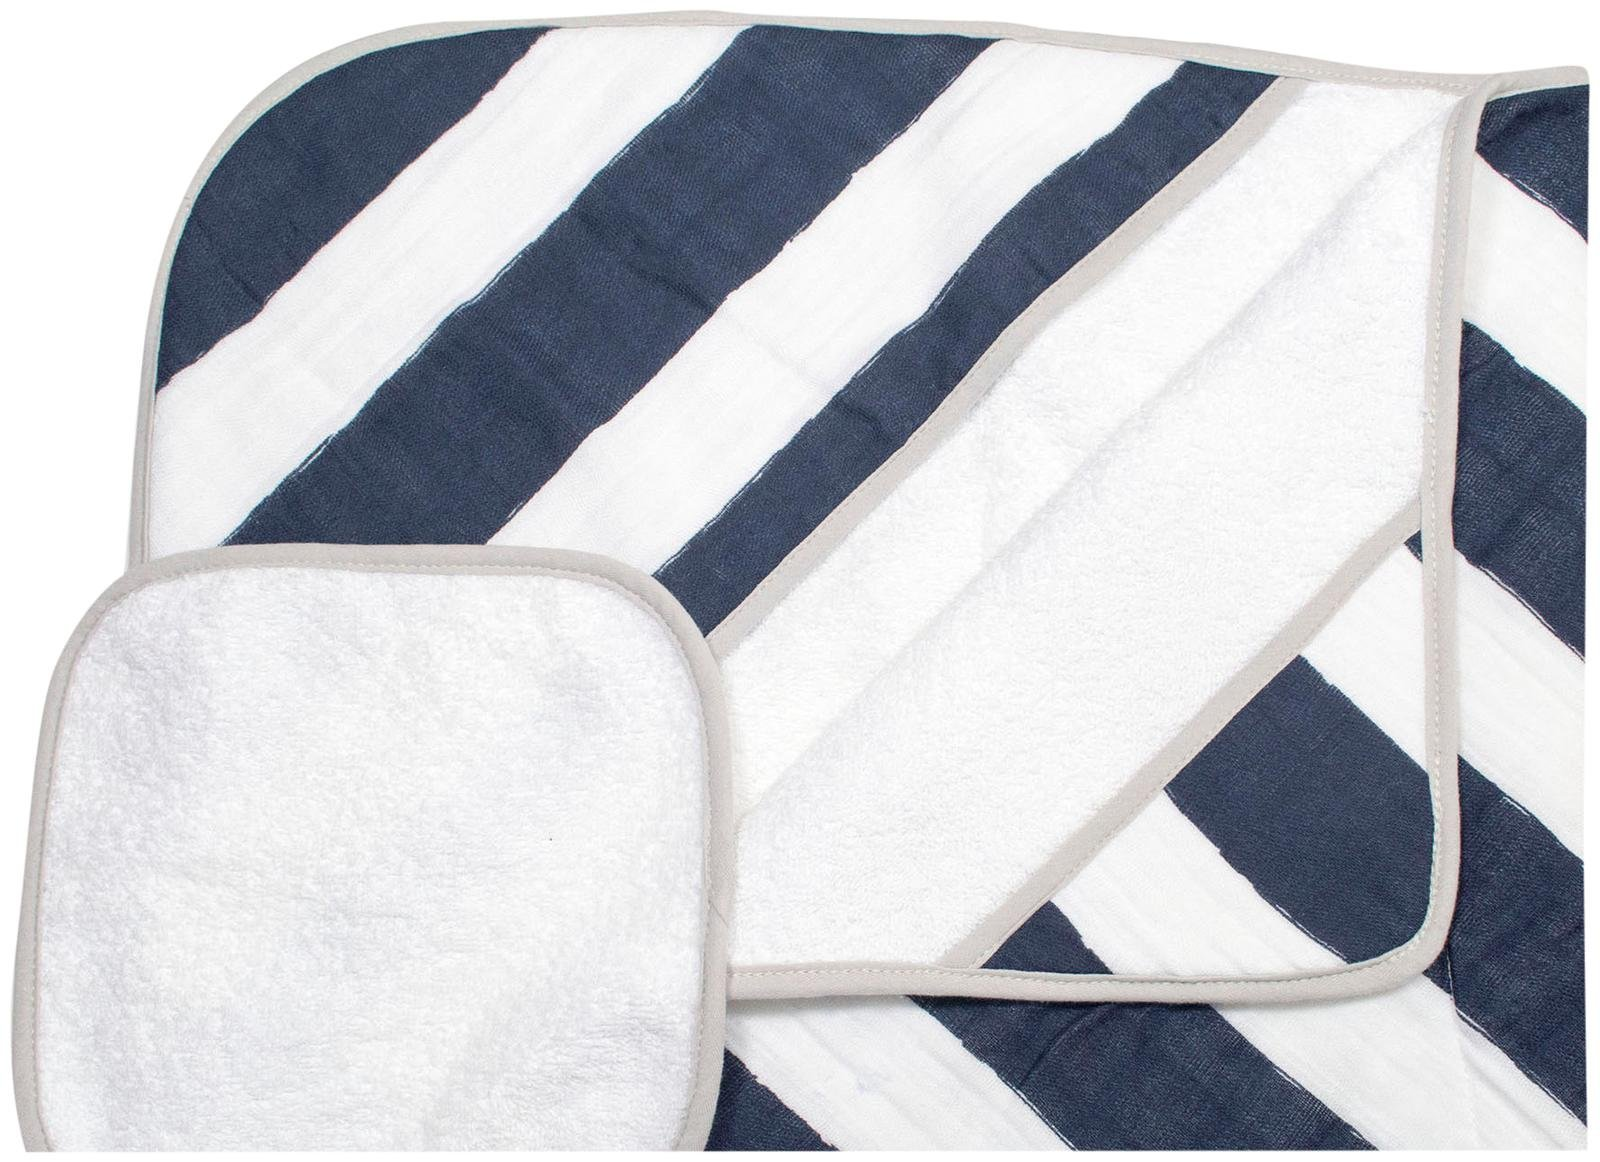 Little Unicorn Cotton Hooded Towel & Wash Cloth Set - Navy Stripe by Little Unicorn